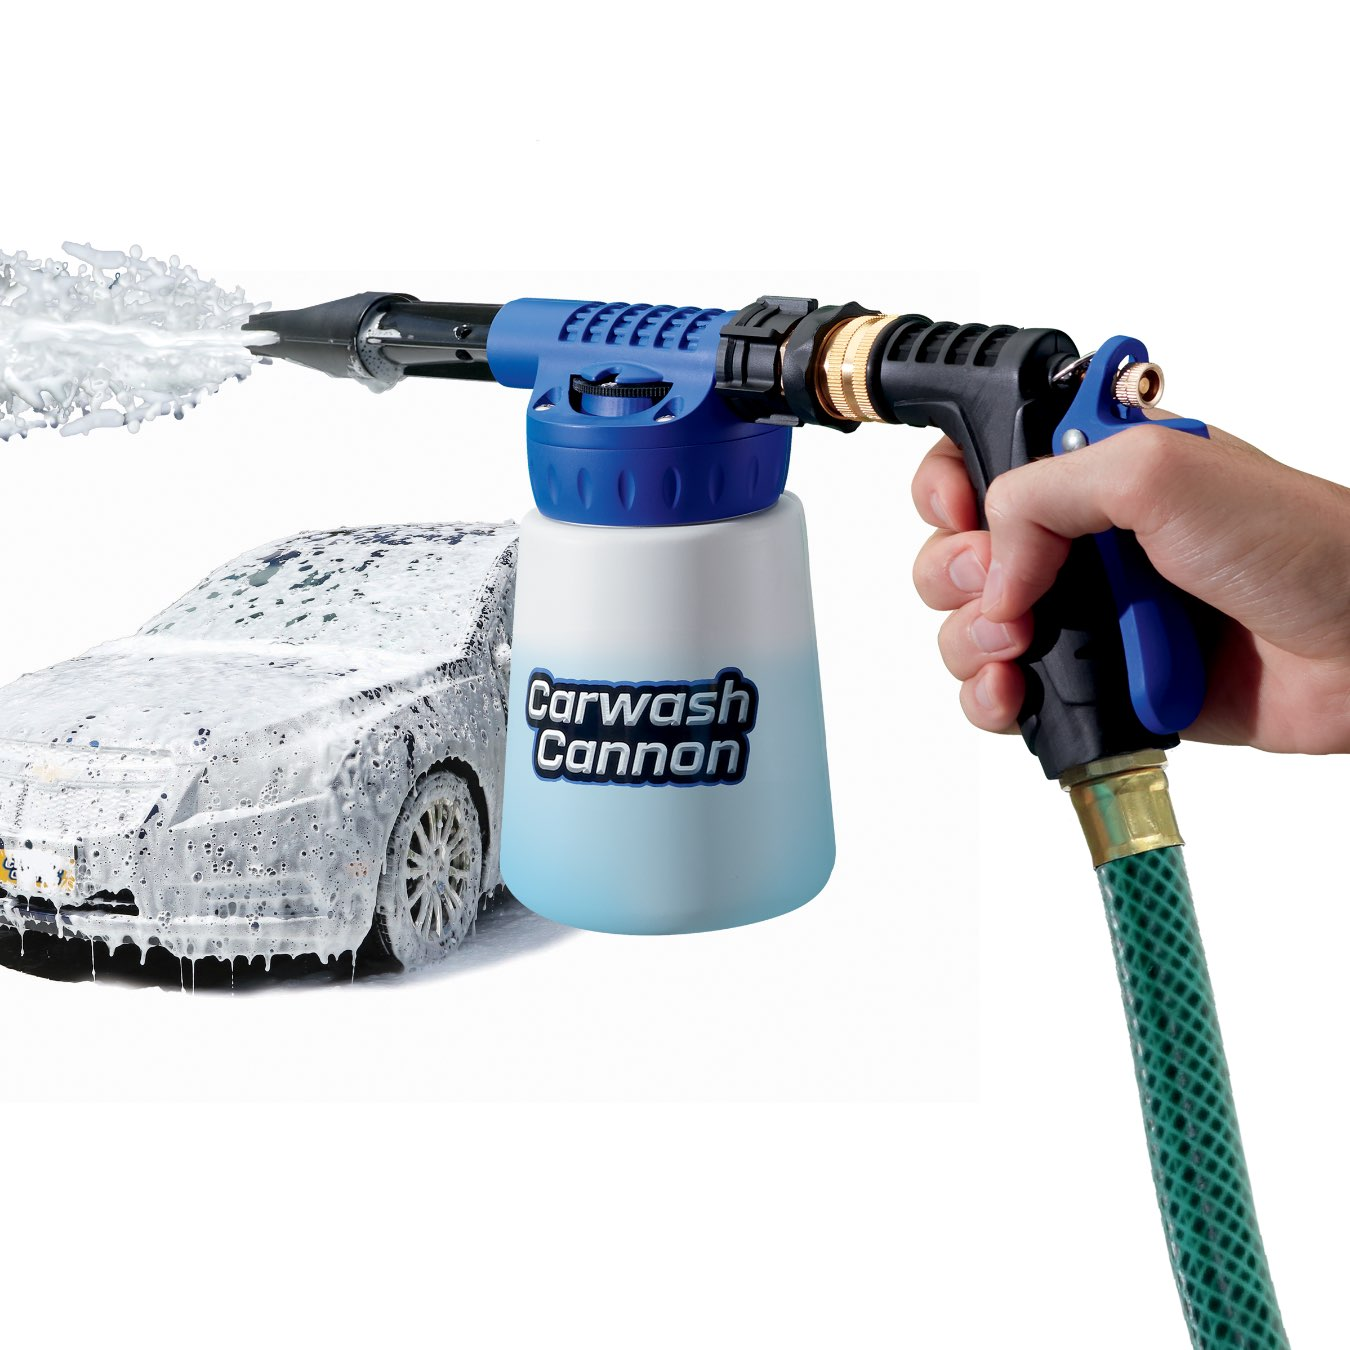 An image of Car Wash Cannon